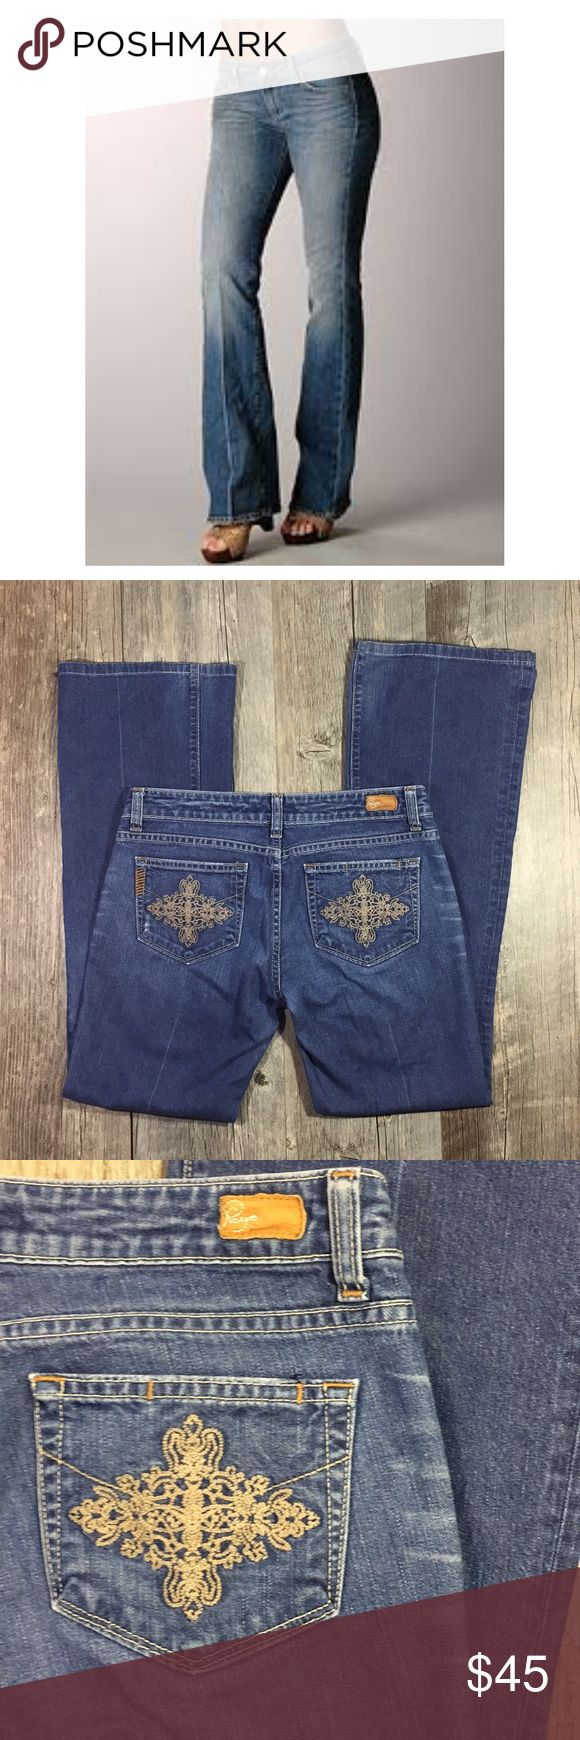 Paige premium denim laurel canyon with crease Paige premium denim laurel canyon with crease. Embroidered pockets. Bootcut. Approx 38.5 inches long. Low rise. Cotton 2% spandex. Tag reads size 28 Paige Jeans Jeans